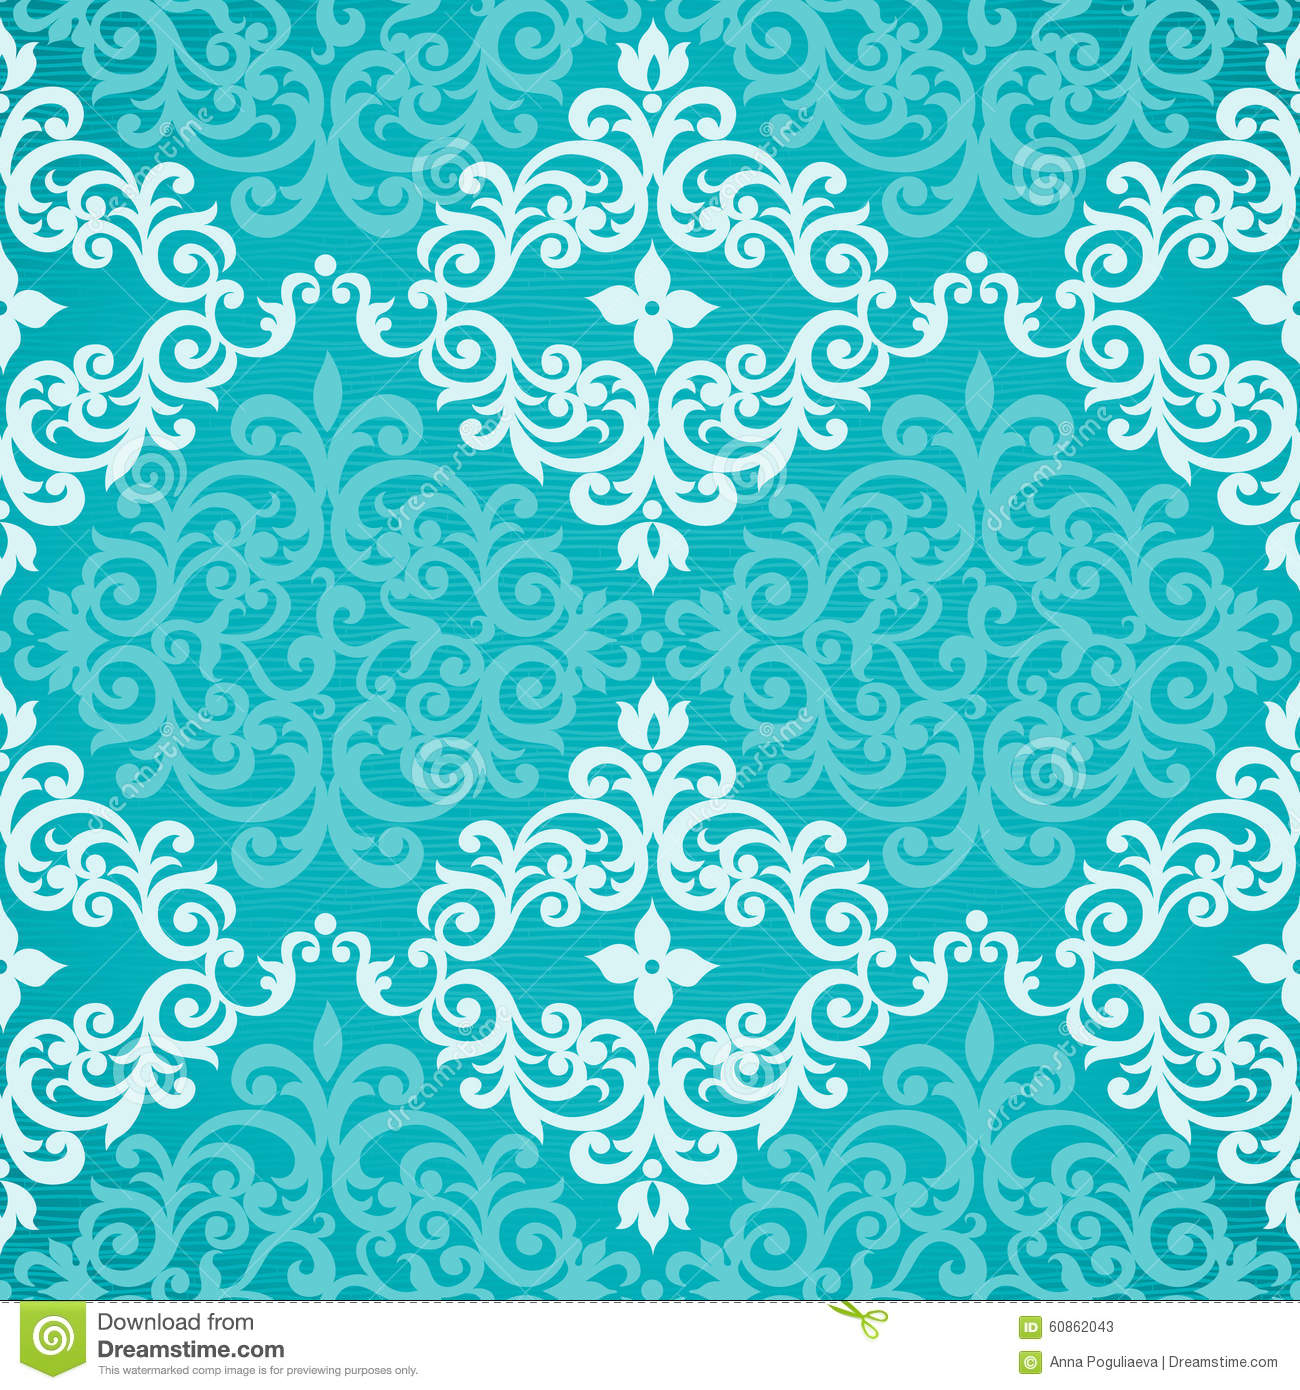 turquoise swirls design wallpapers - photo #34